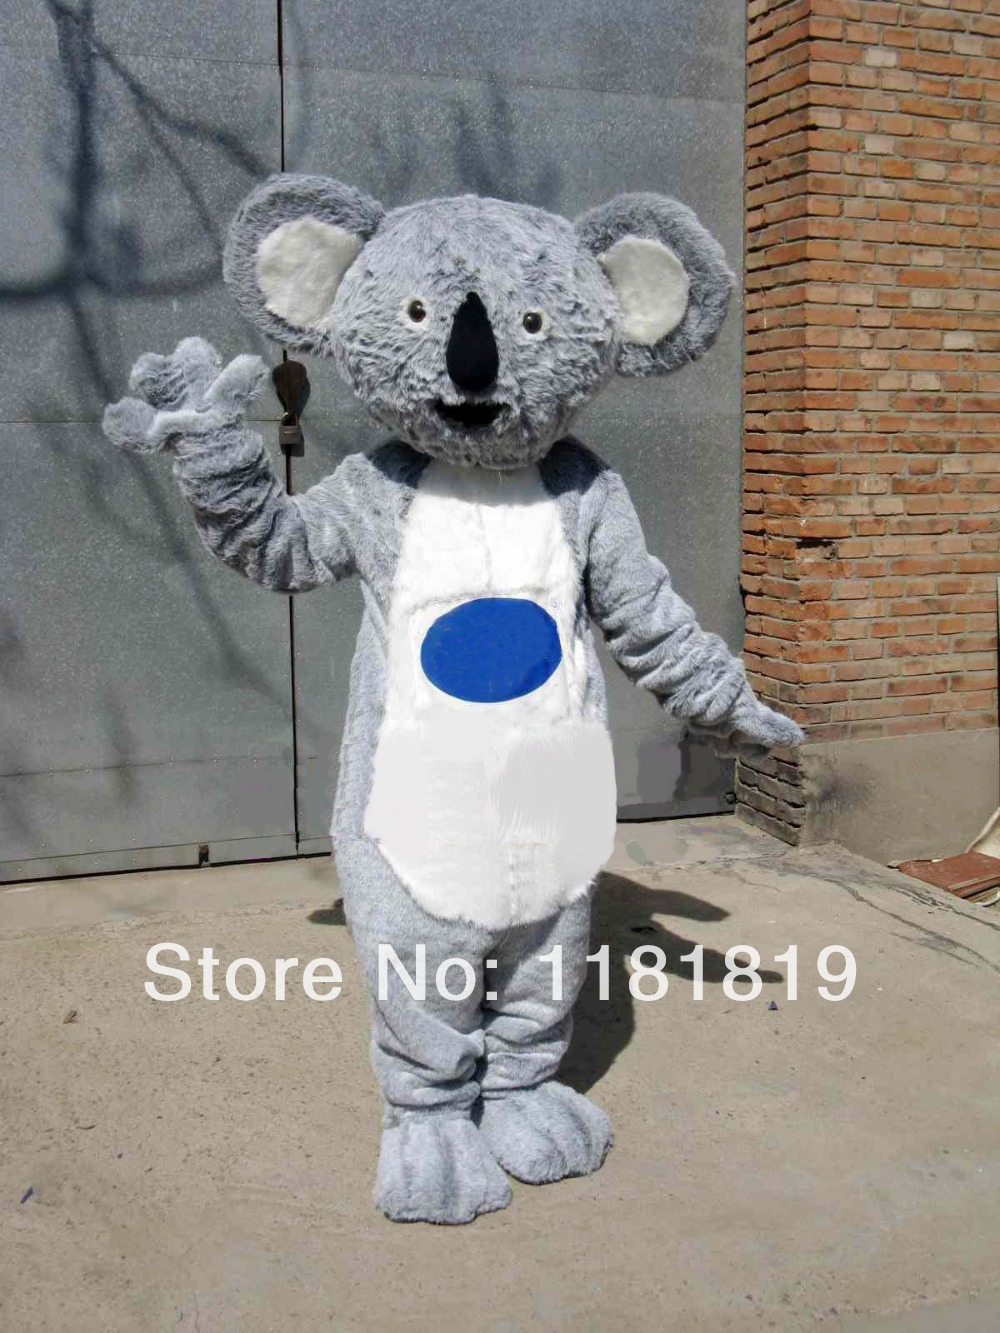 mascot koala Mascot costume hot sale Halloween cartoon character fancy dress carnival costume outfit suit